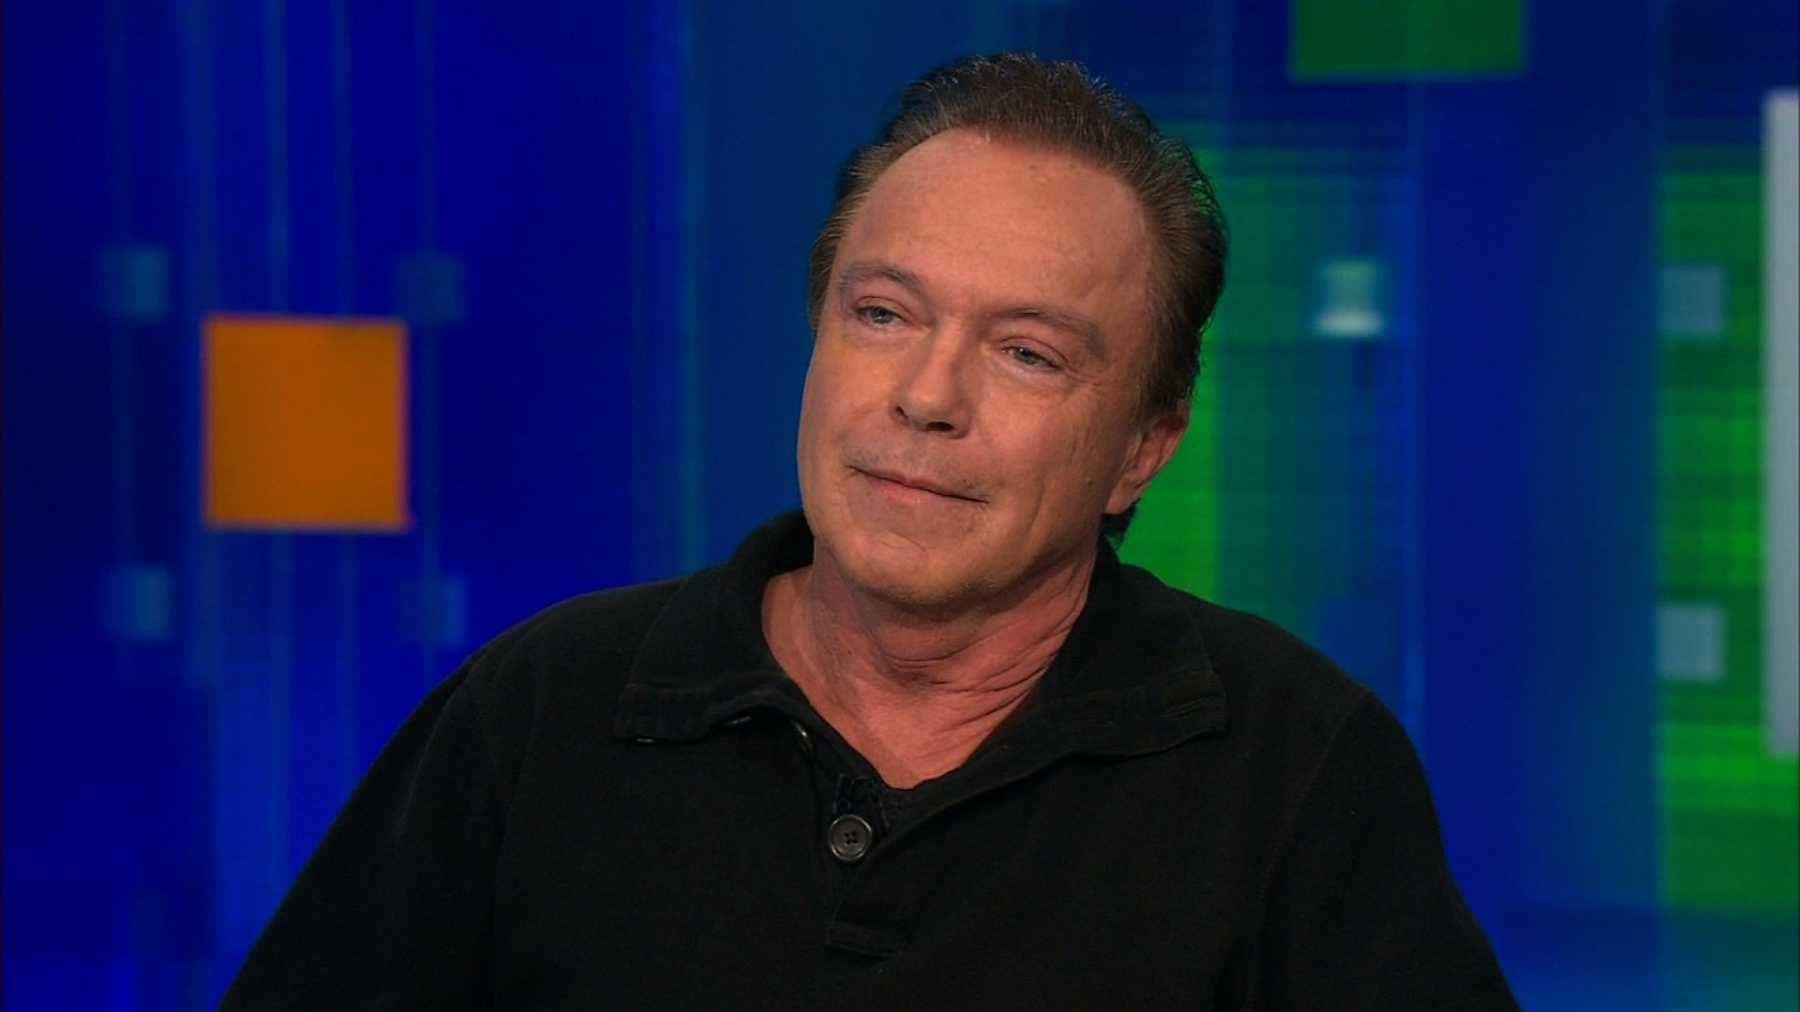 David Cassidy Reveals His Battle With Dementia | david cassidy